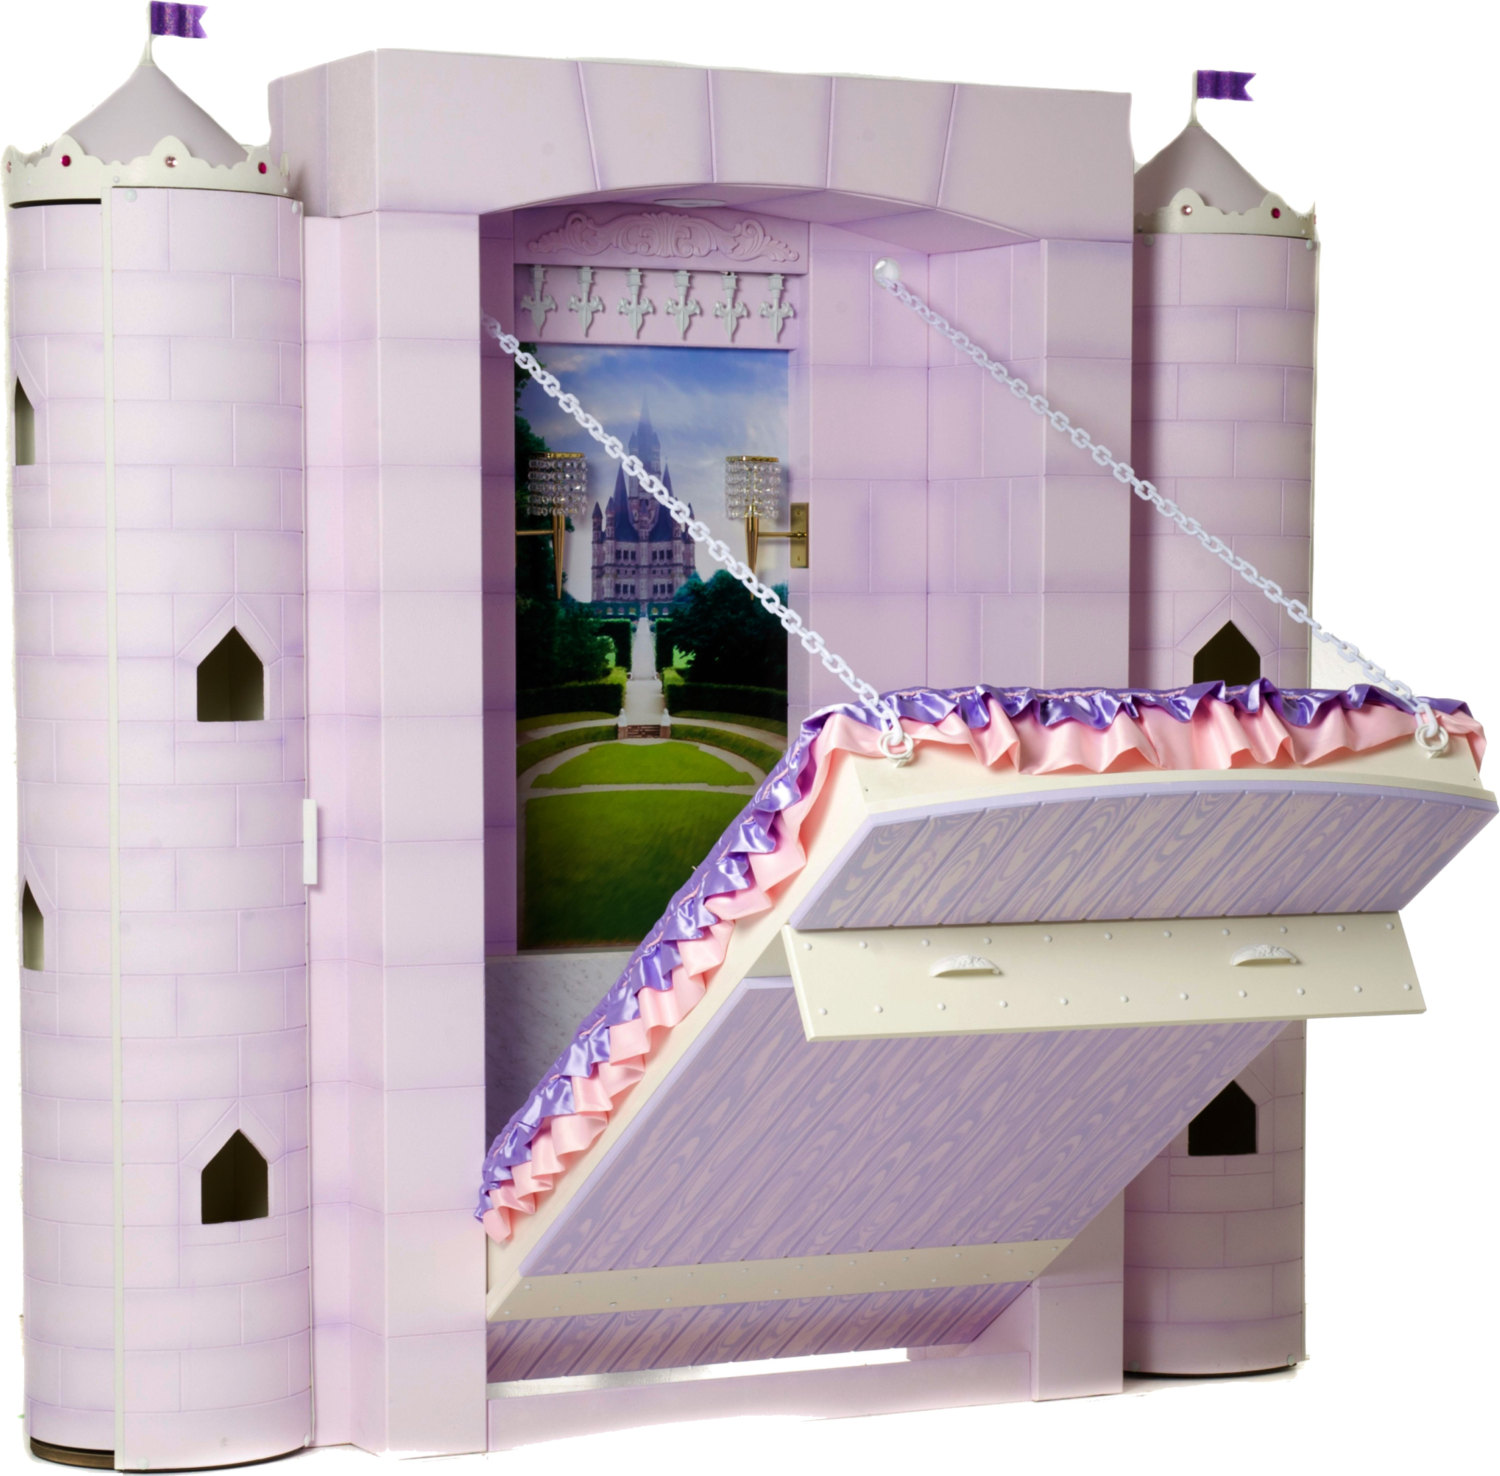 Bedroom clipart castle. Princess bed for girl